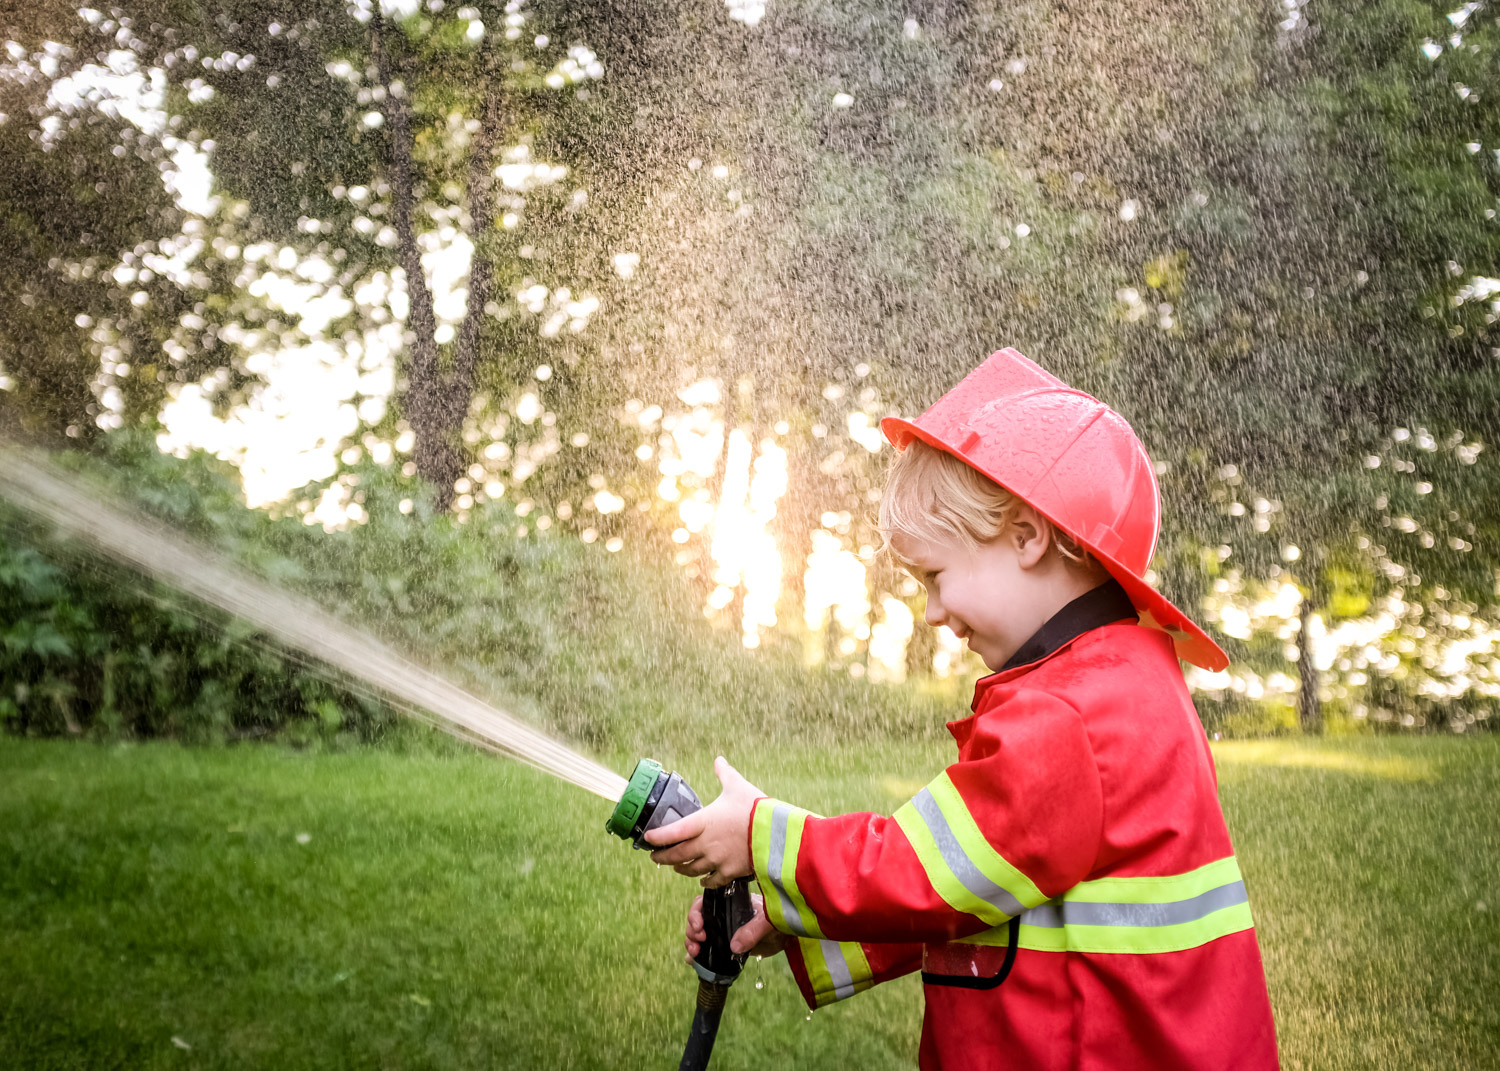 Fireman thsemed toddler photo session.